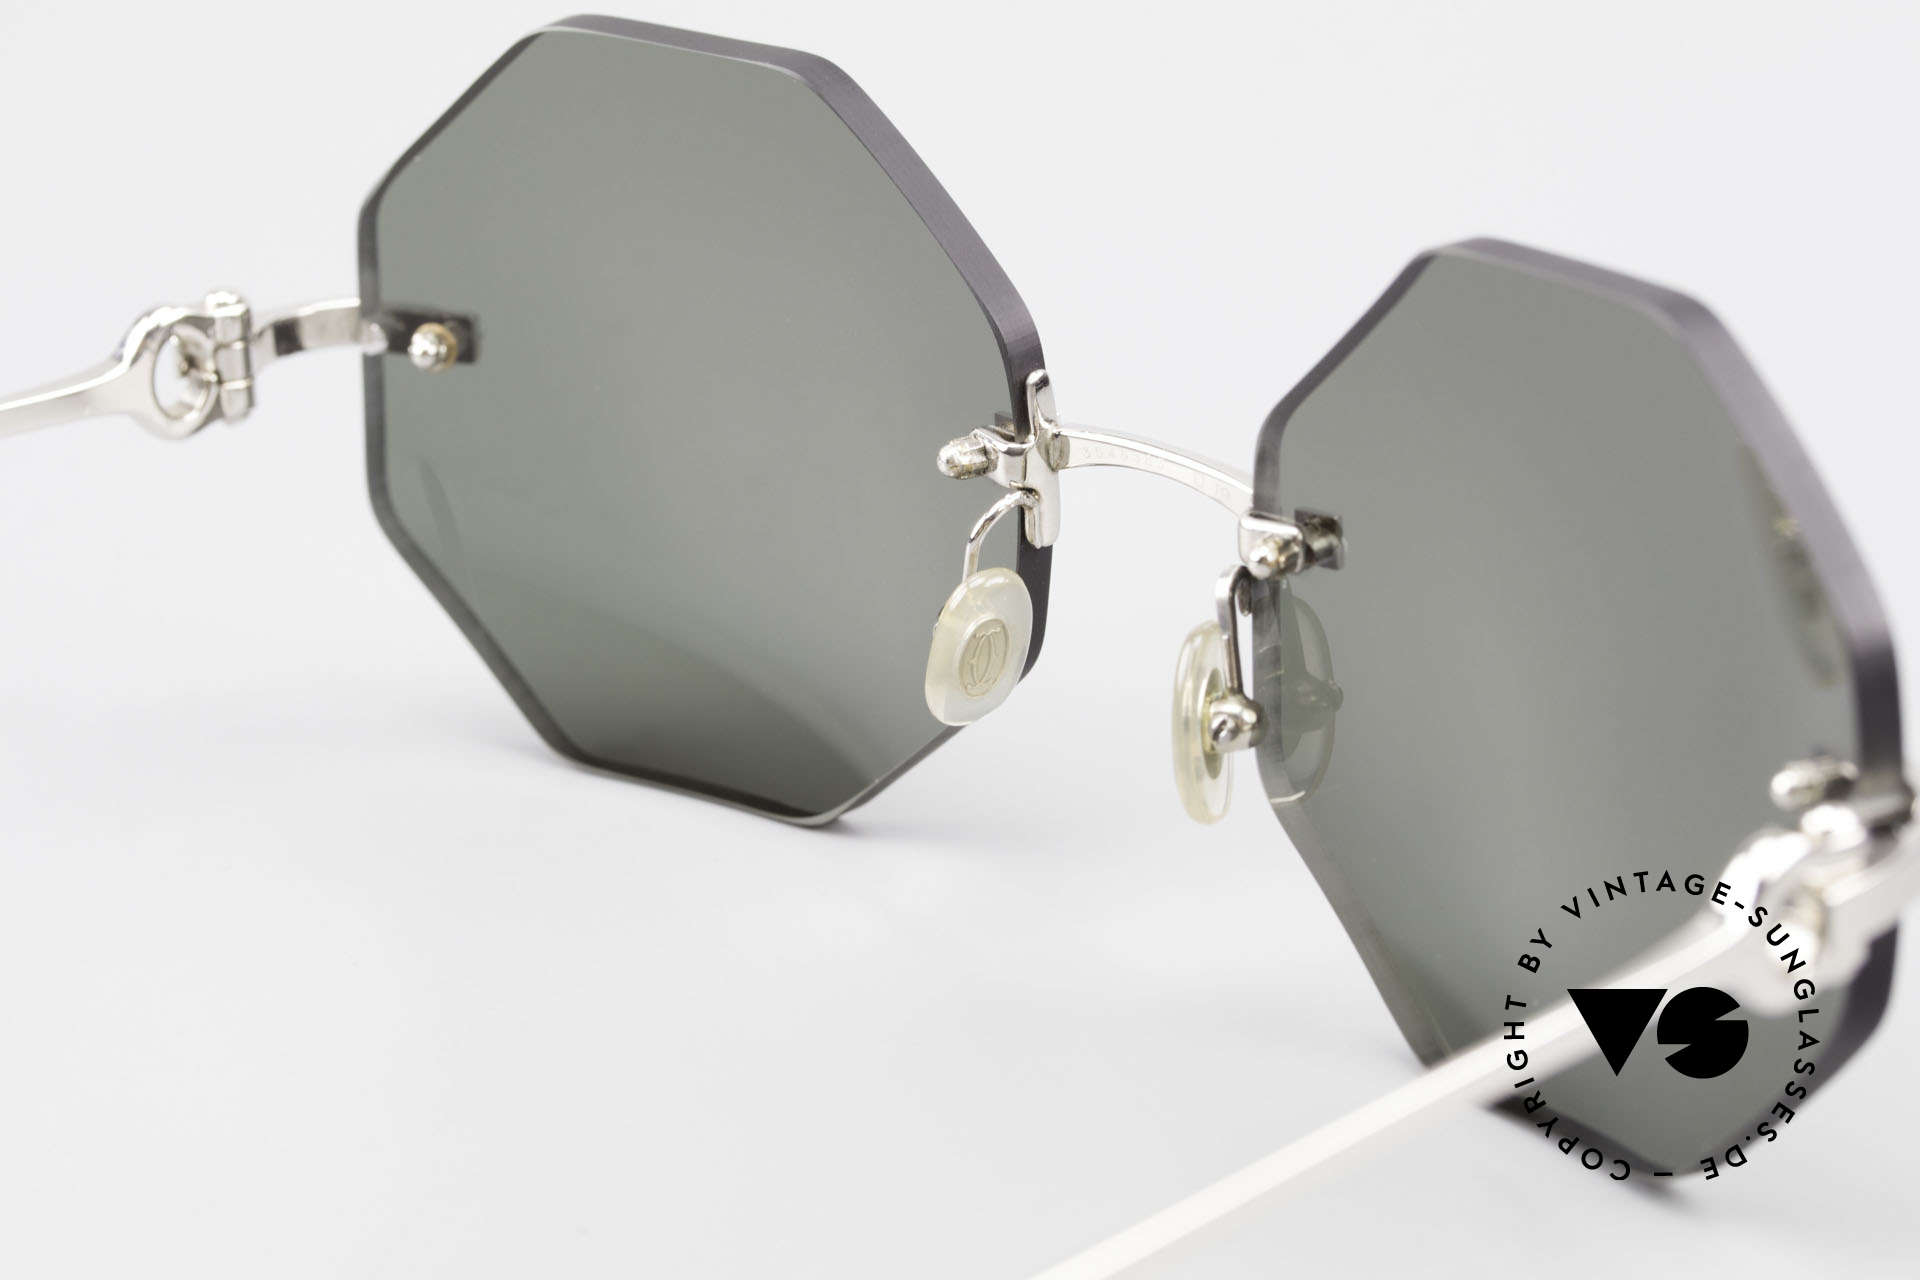 Cartier Rimless Octag Octagonal Luxury Sunglasses, with new CR39 UV400 lenses in gray-green G15 color, Made for Men and Women